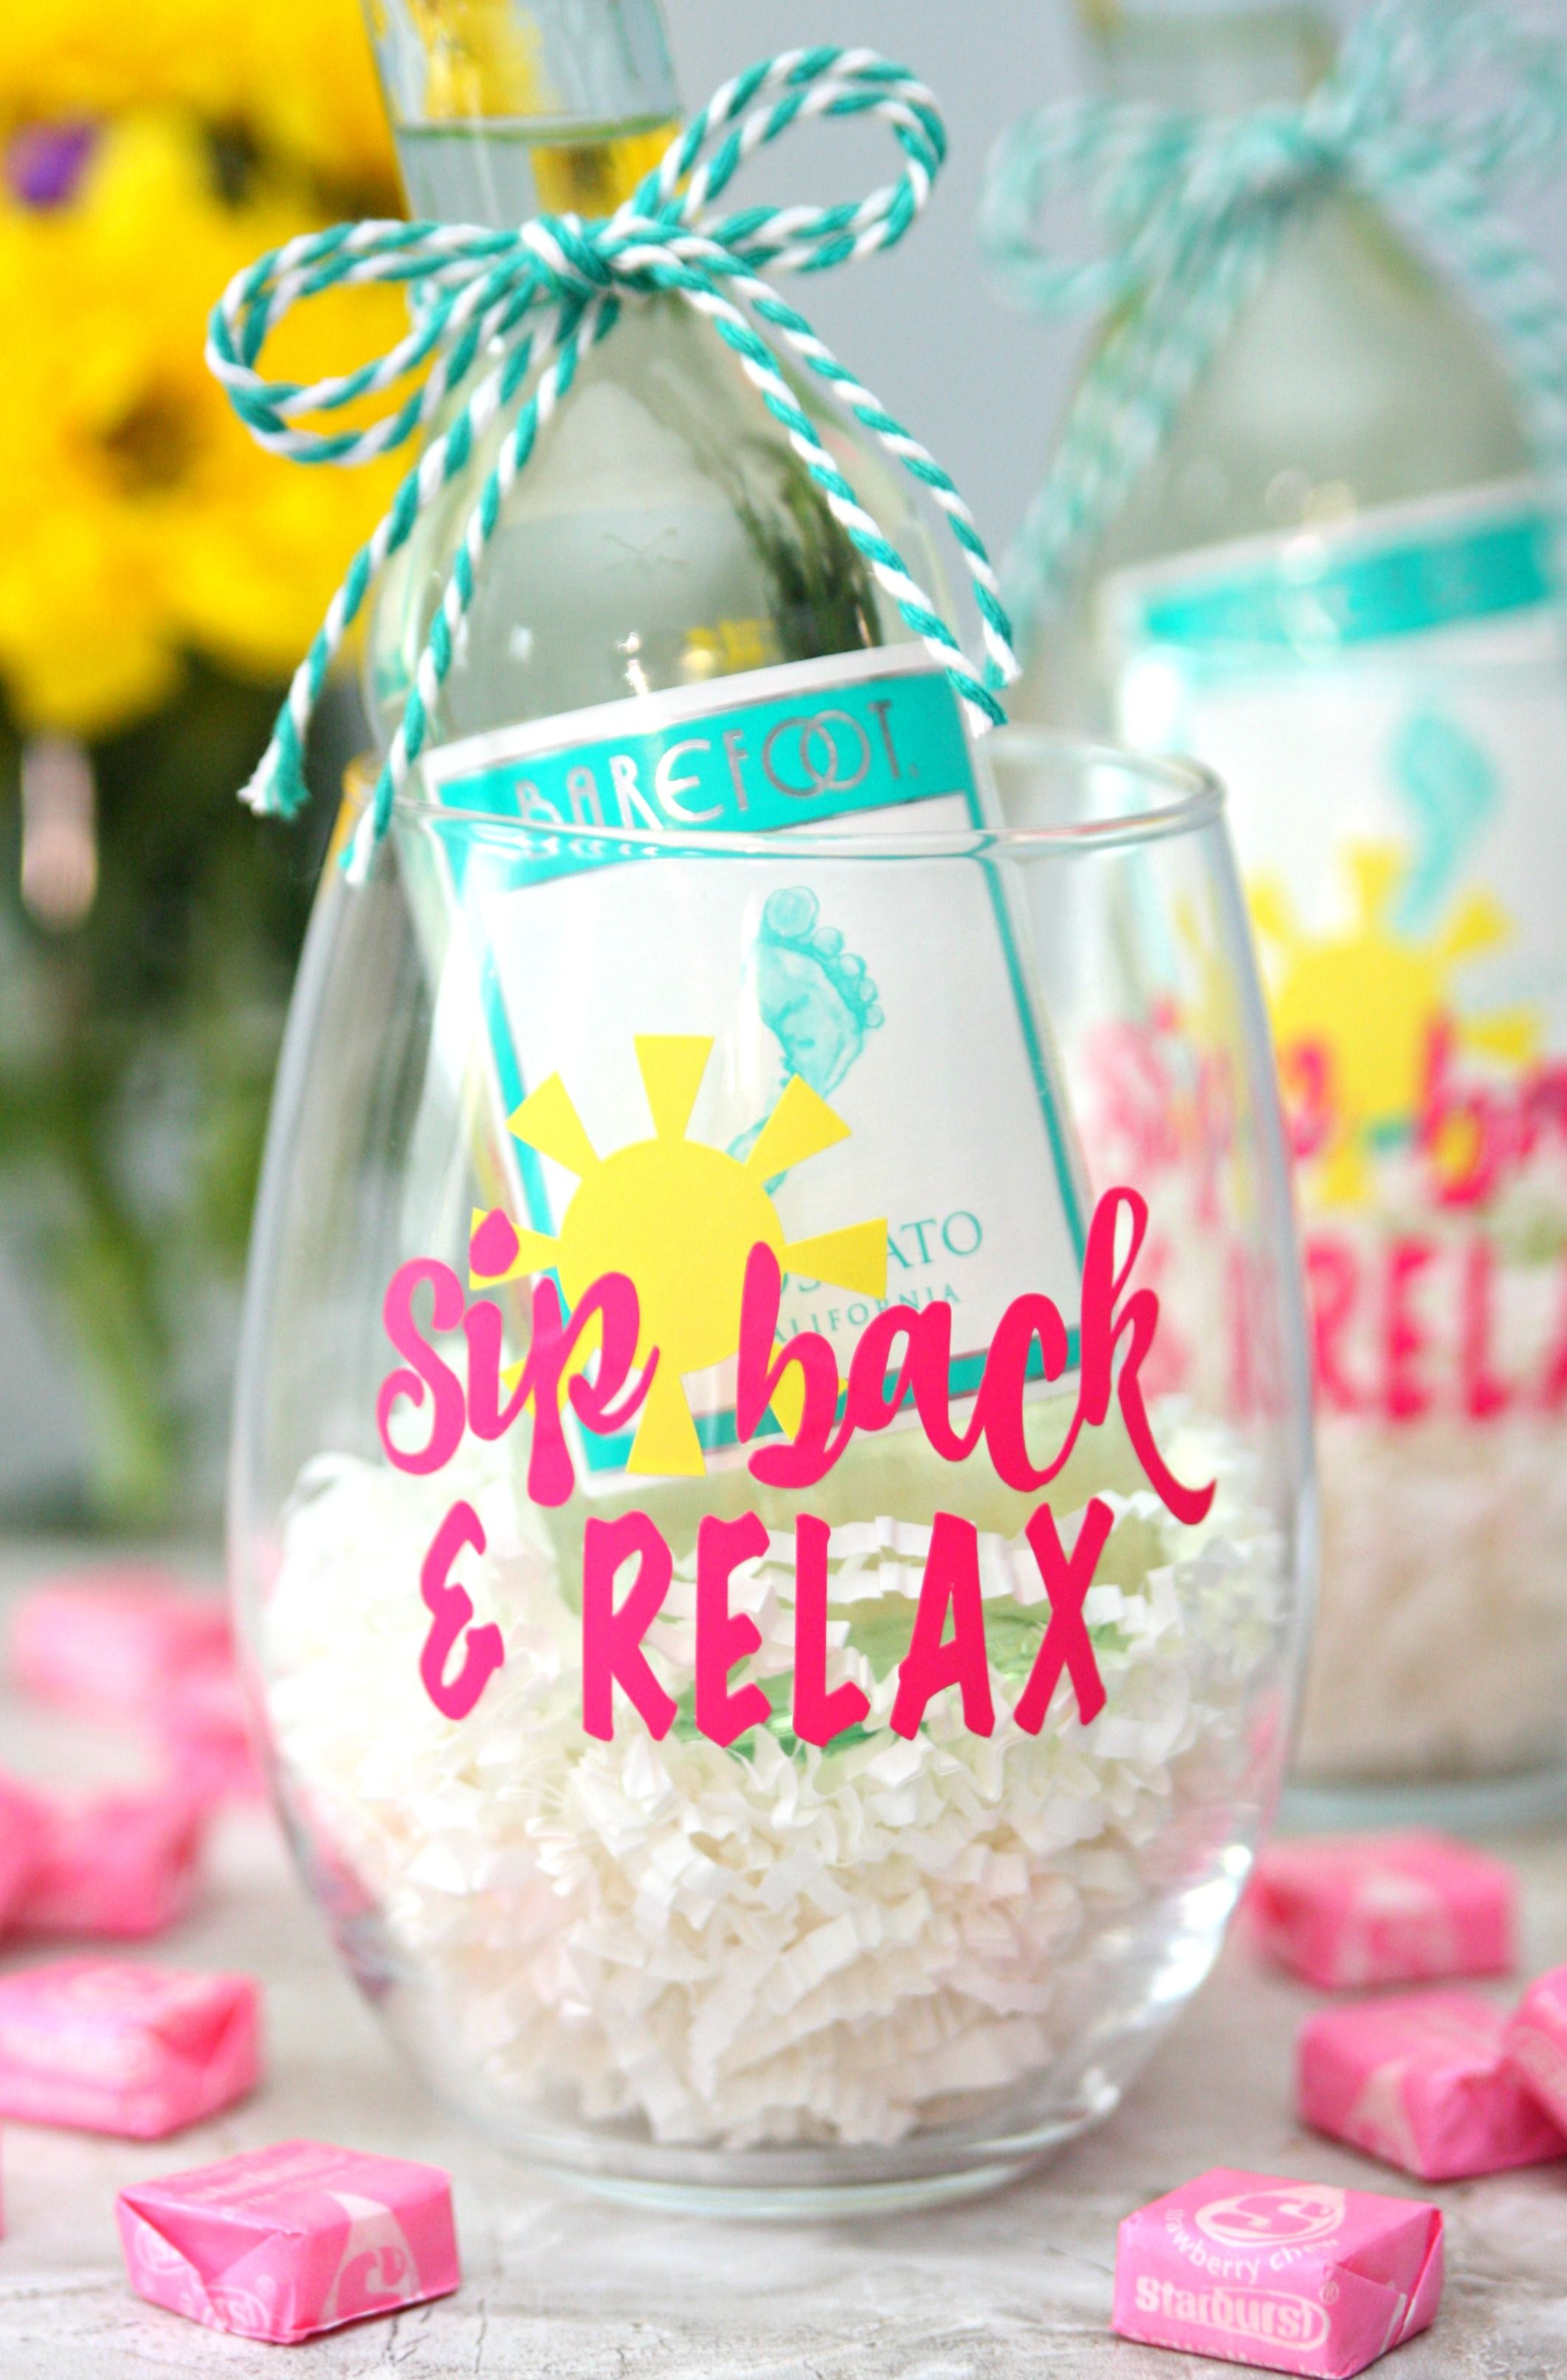 Sip Back And Relax Wine Glasses The Perfect Summer Gift